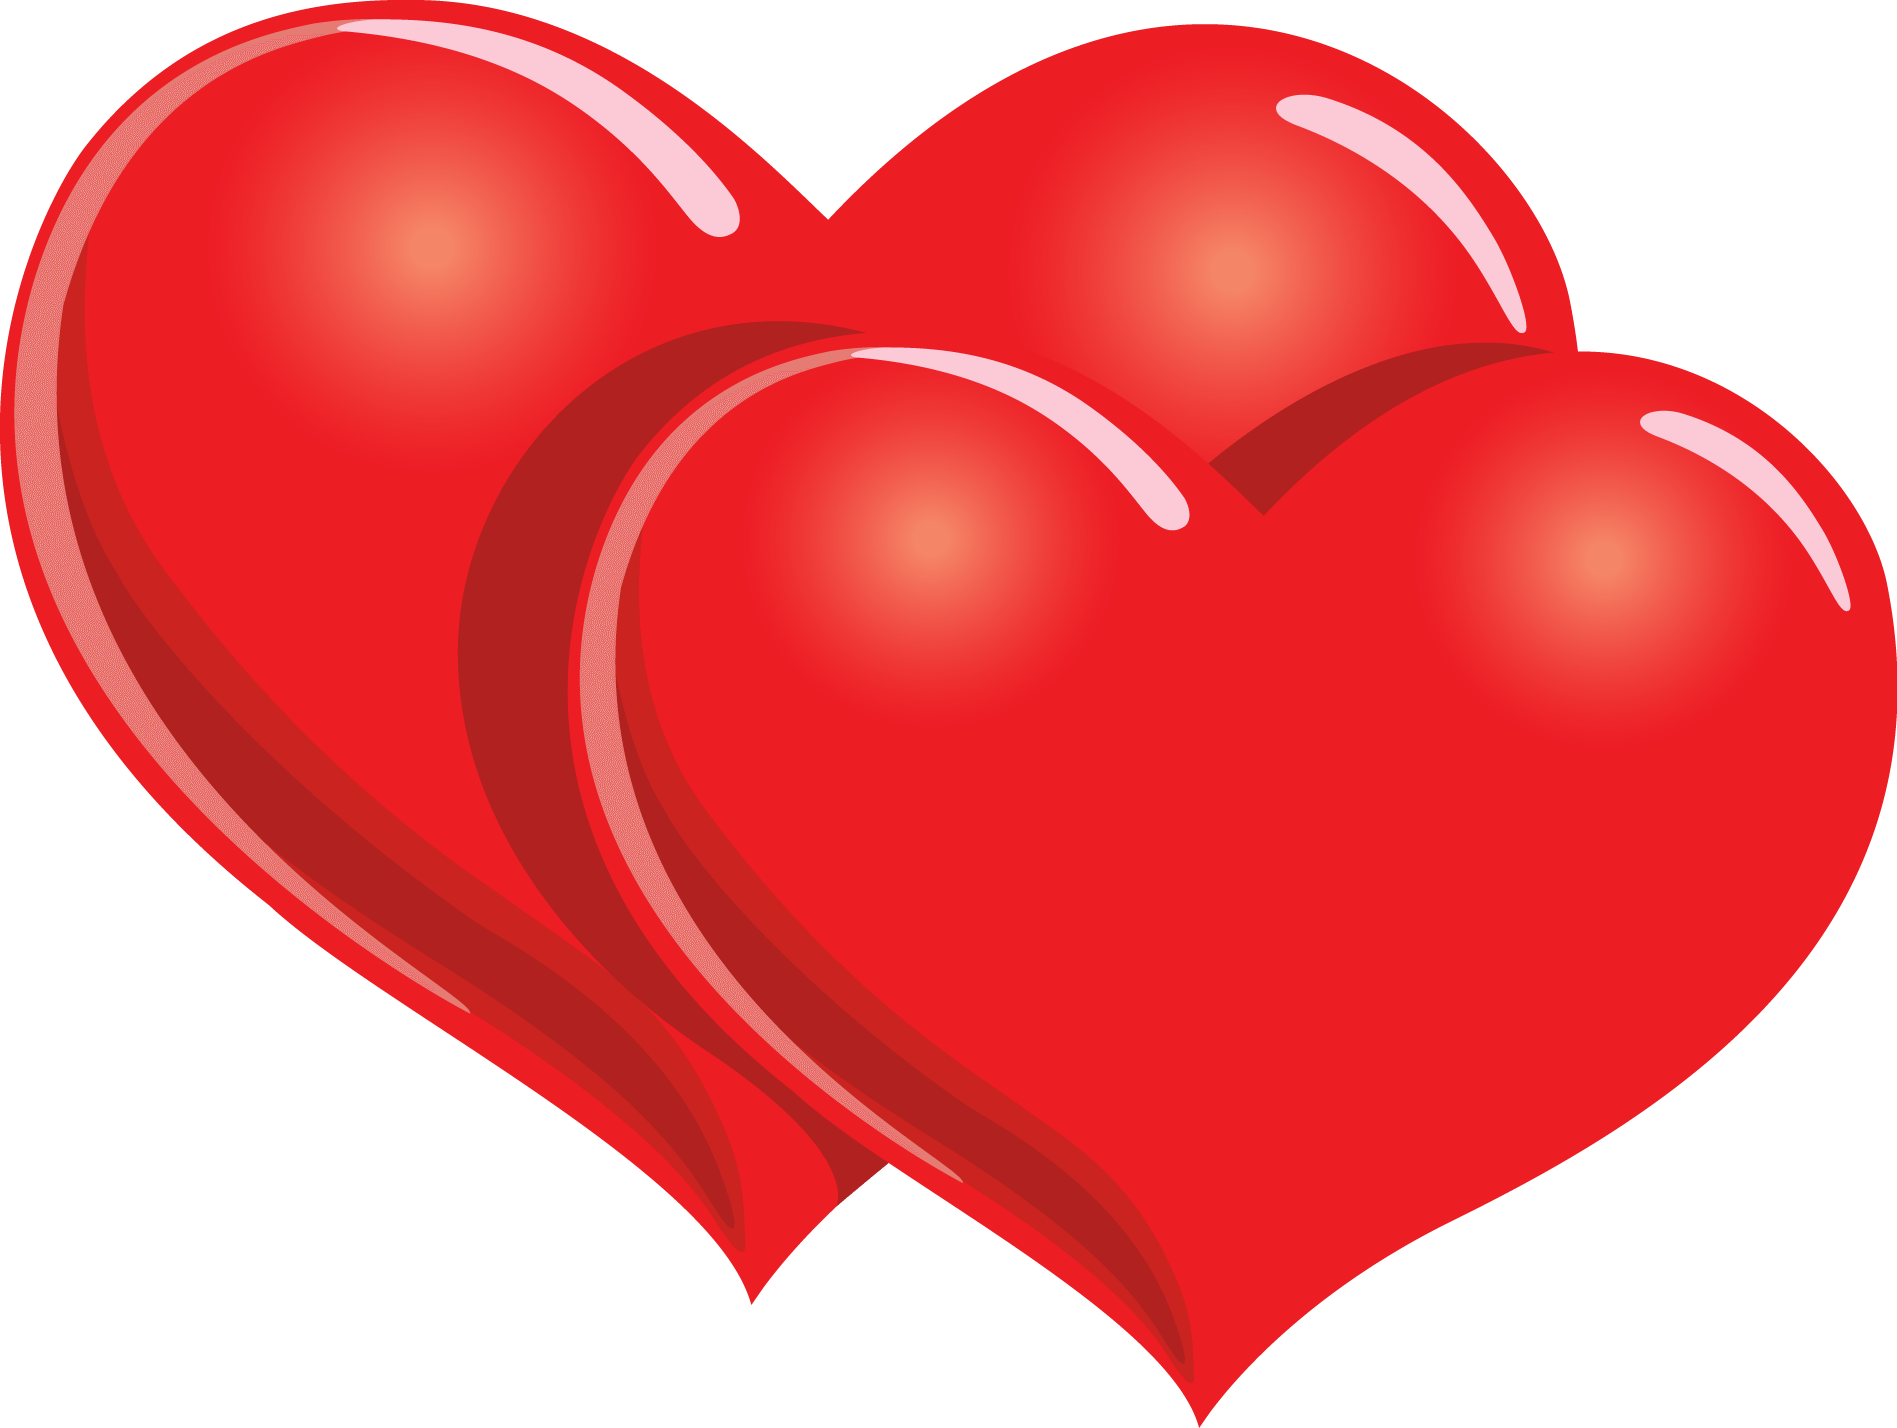 happy valentines two hearts transparent png stickpng happy valentine's day clip art images happy valentine's day clip art minions